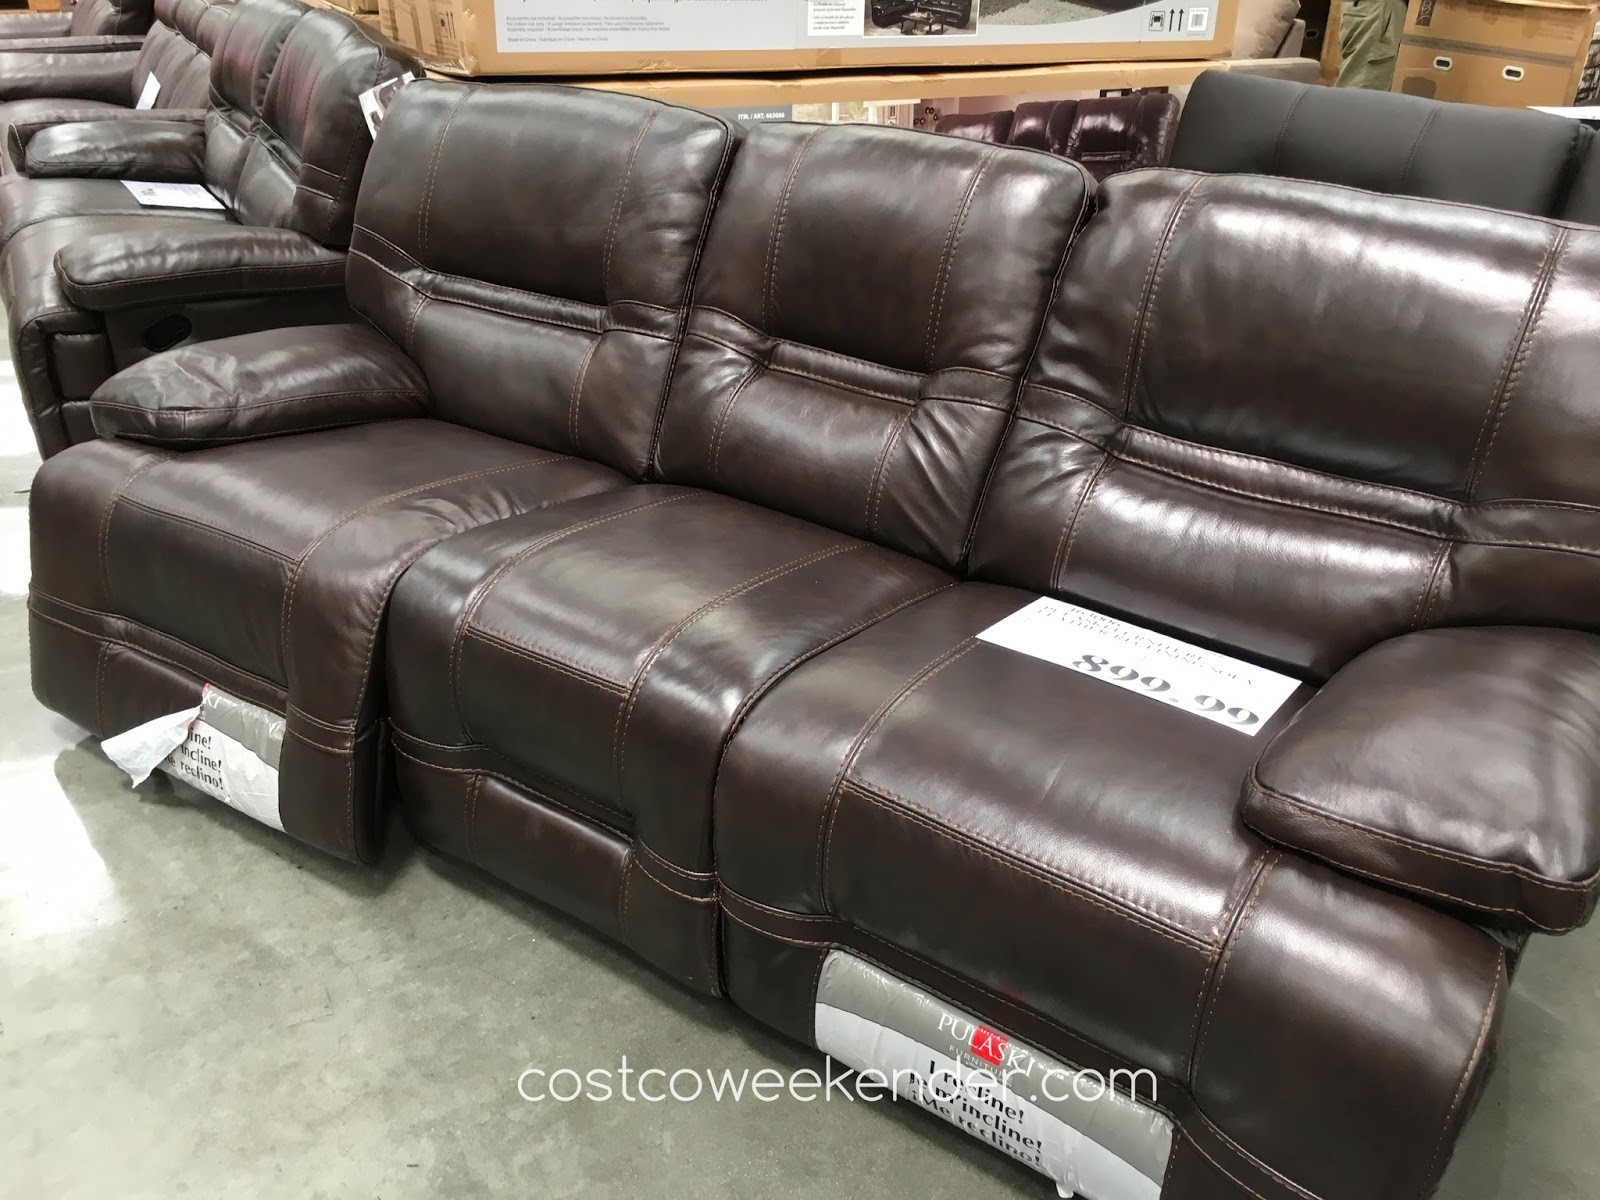 Costco Furniture sofas Latest Costco Home Furniture Pulaski Leather Power Reclining sofa Costco Photograph